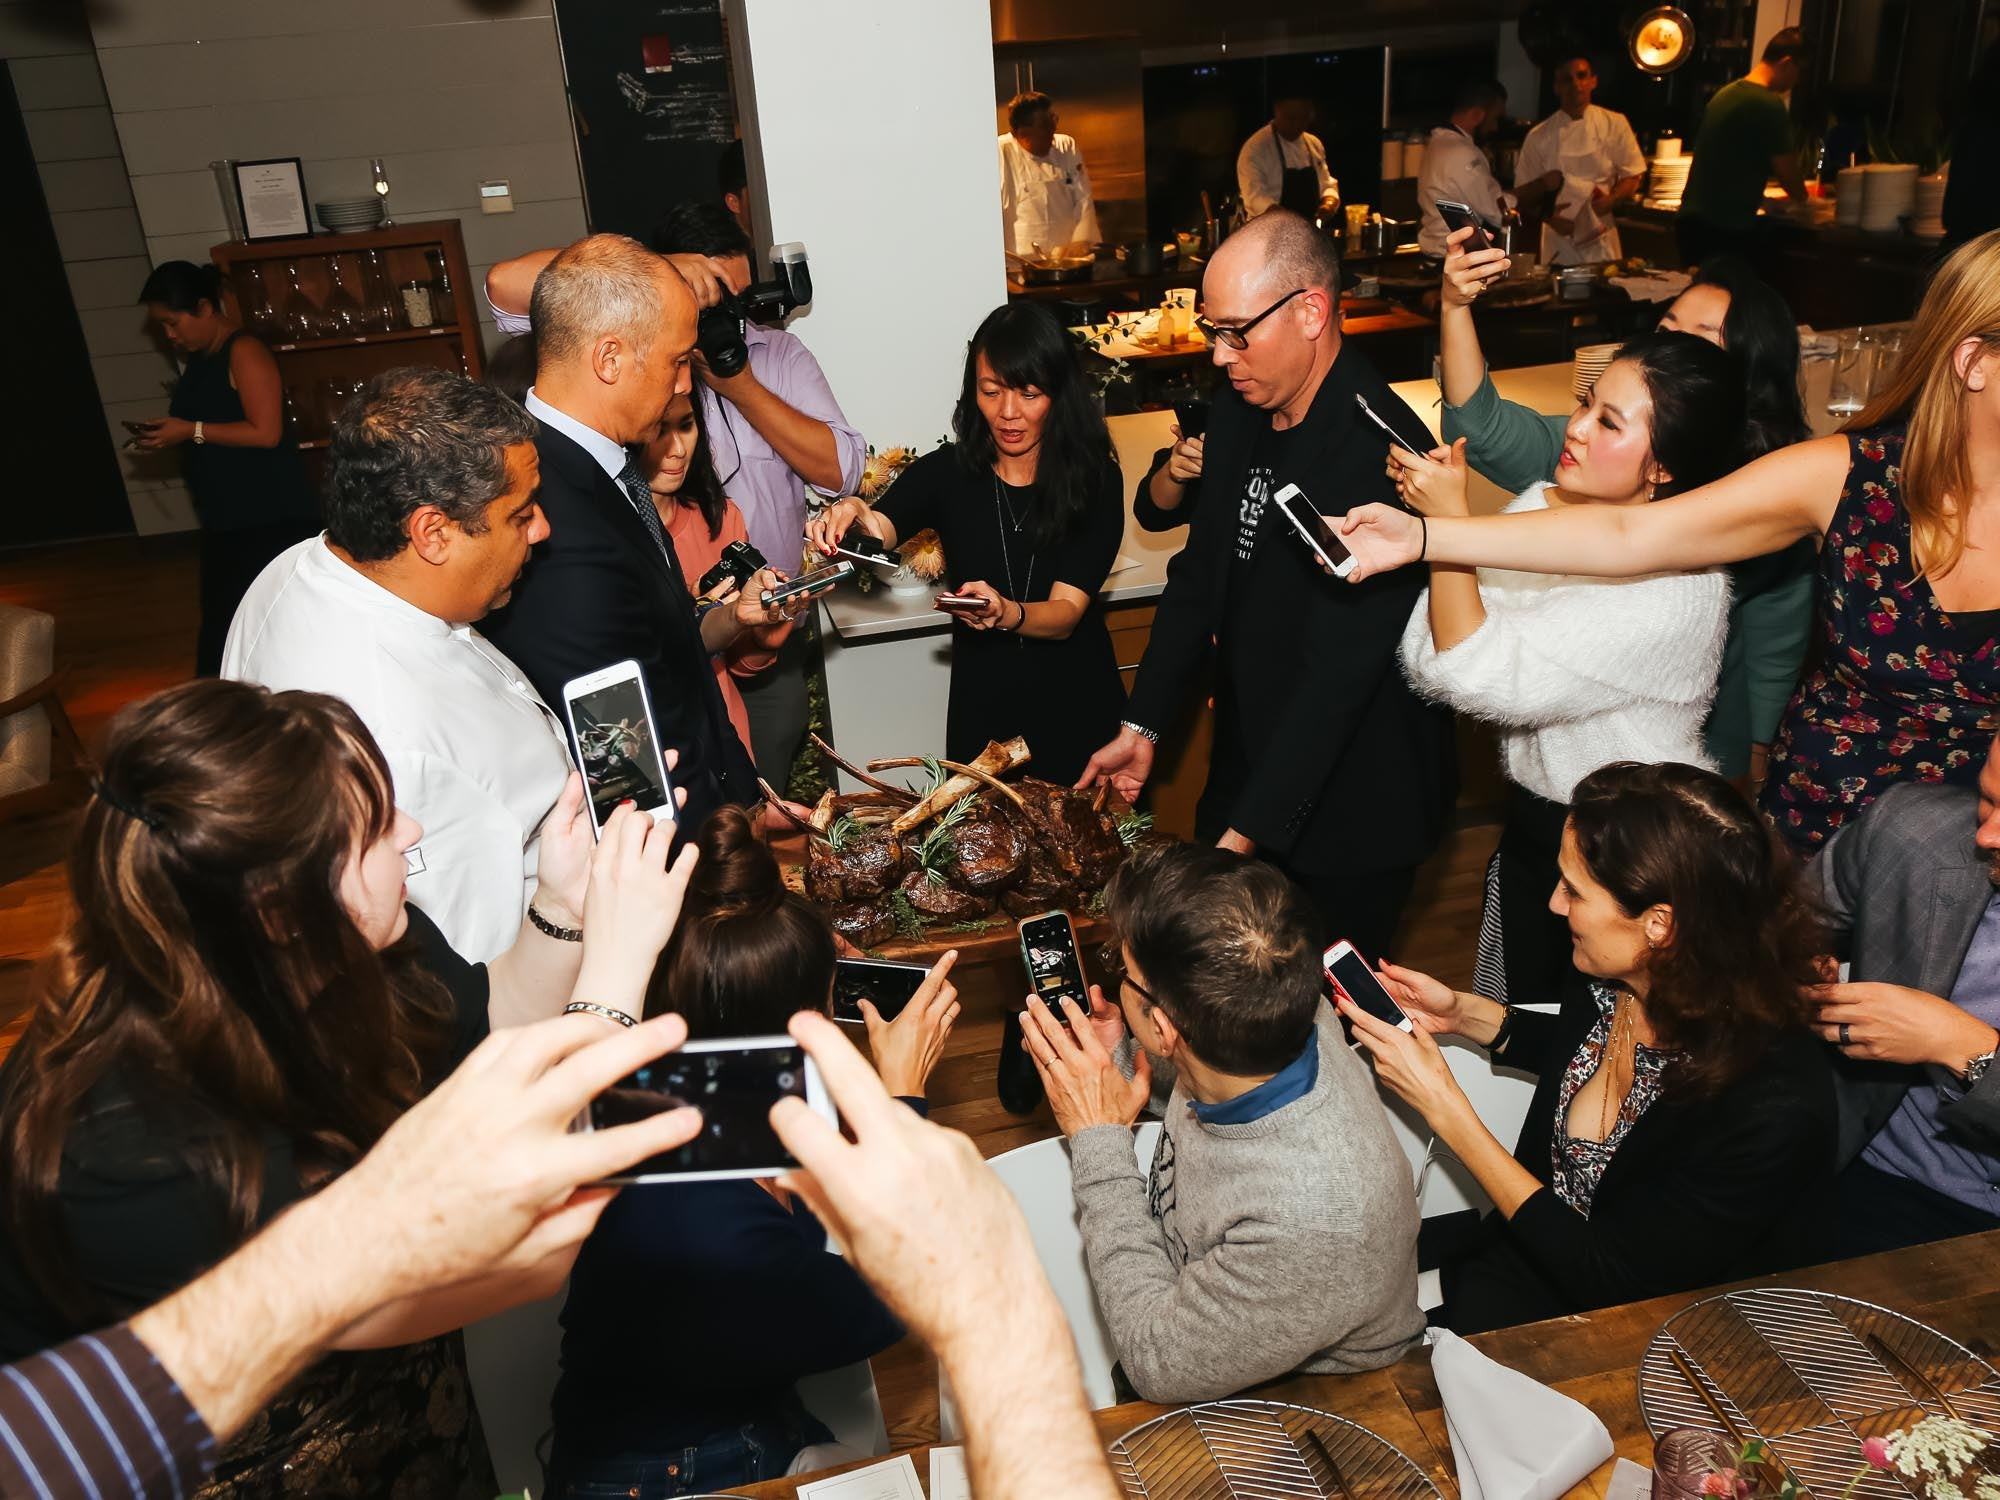 Scenes From Our Saveur Supper With Chef Michael Mina and JW Marriott